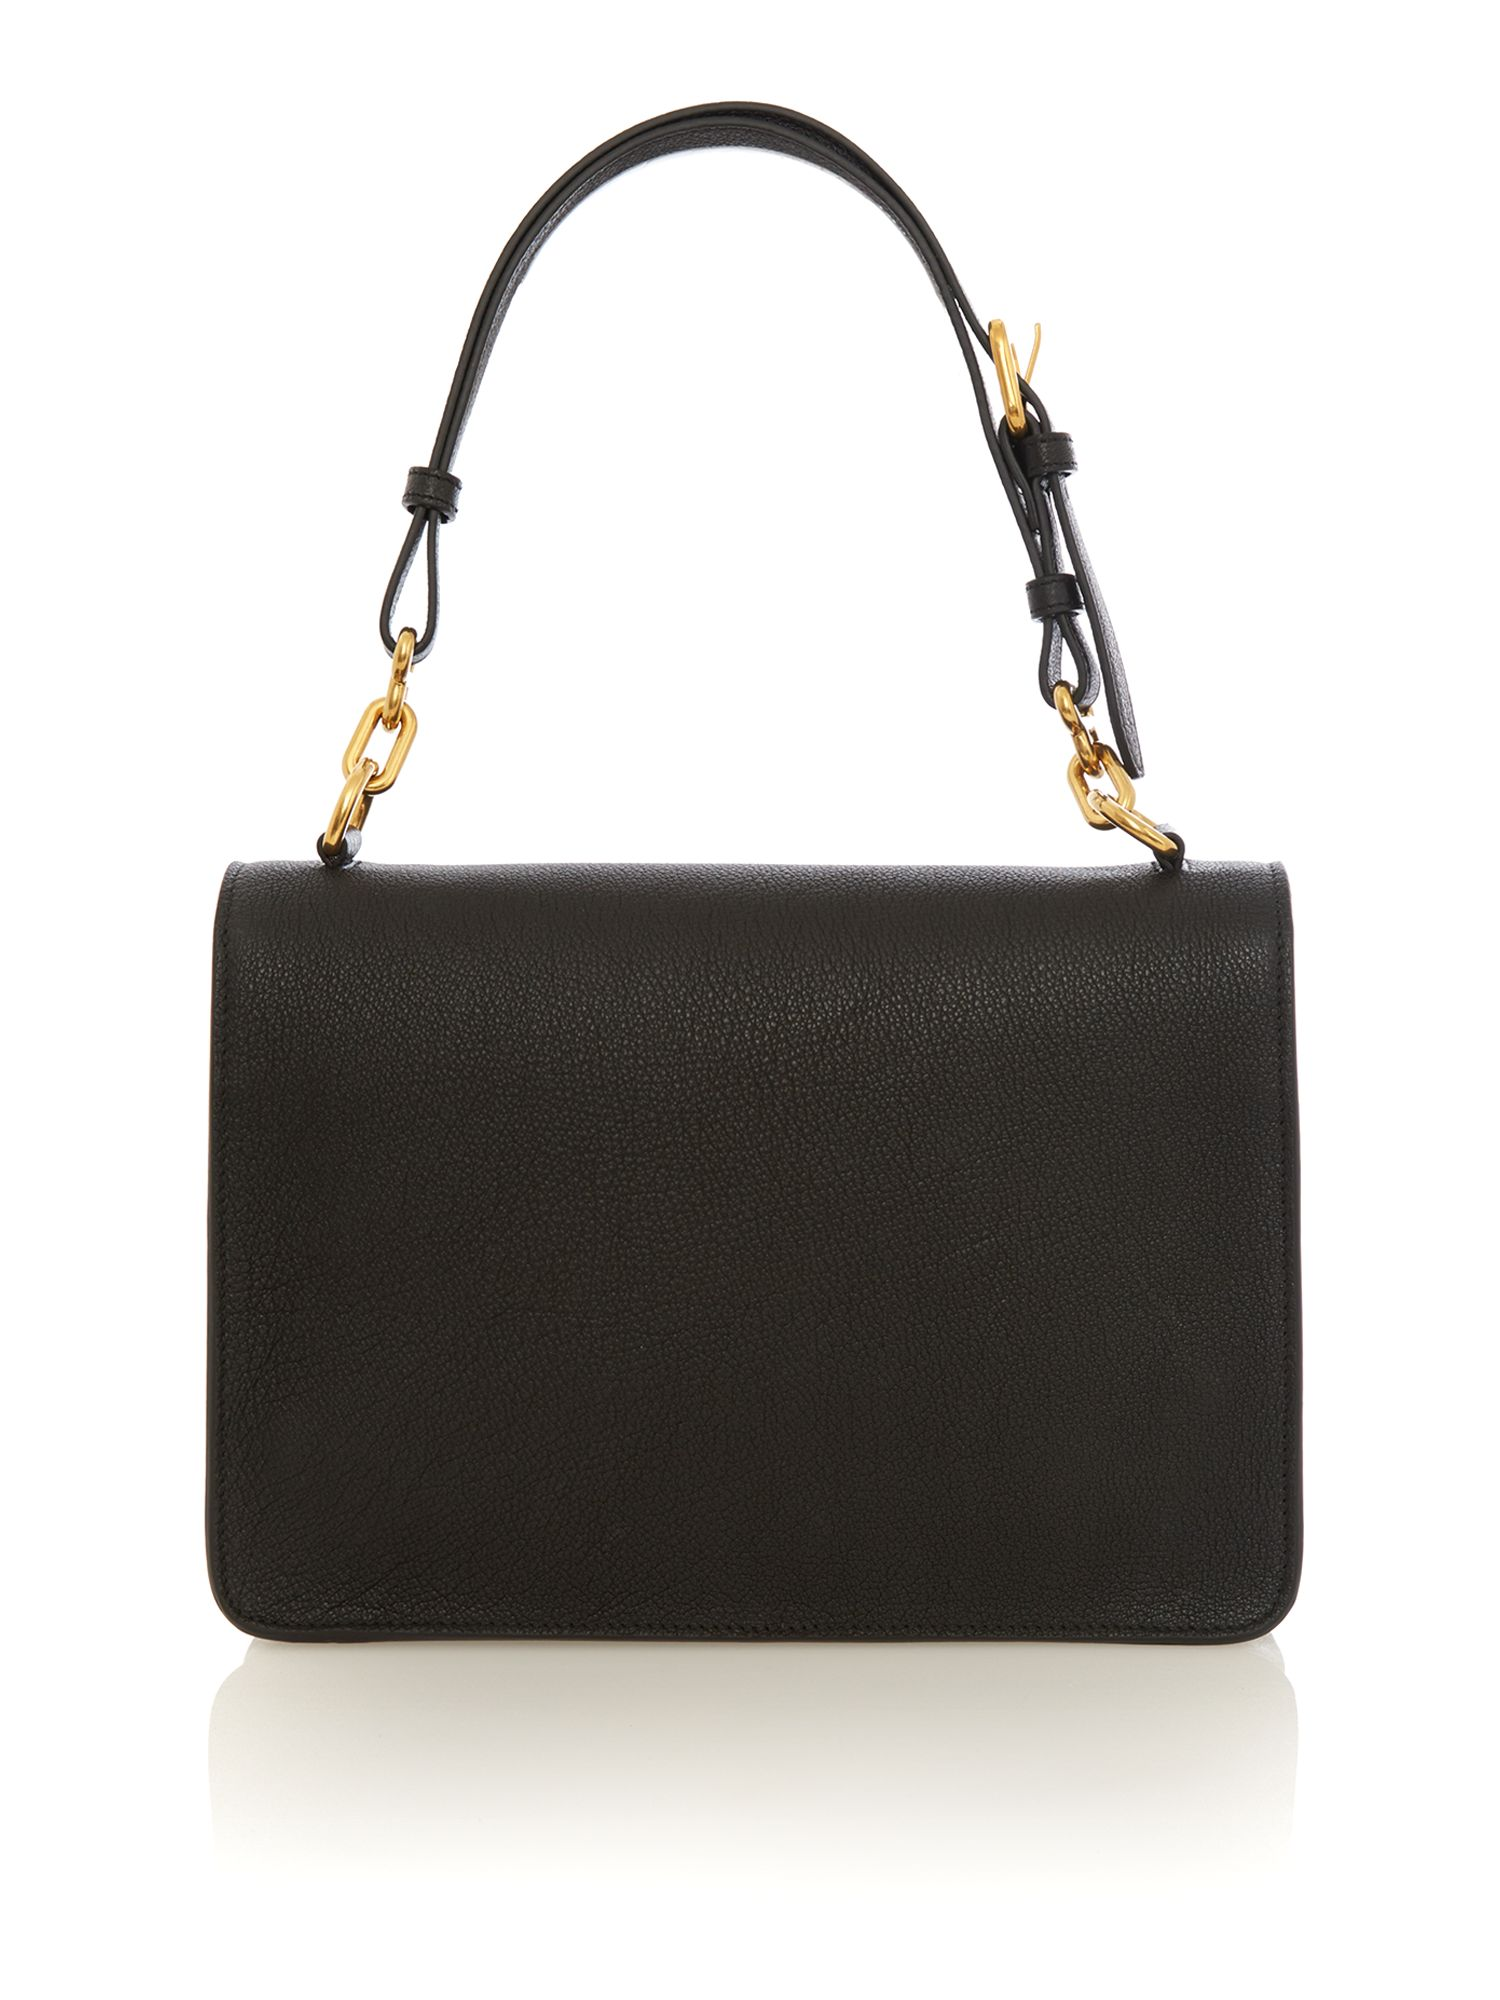 Grenelle black shoulder bag